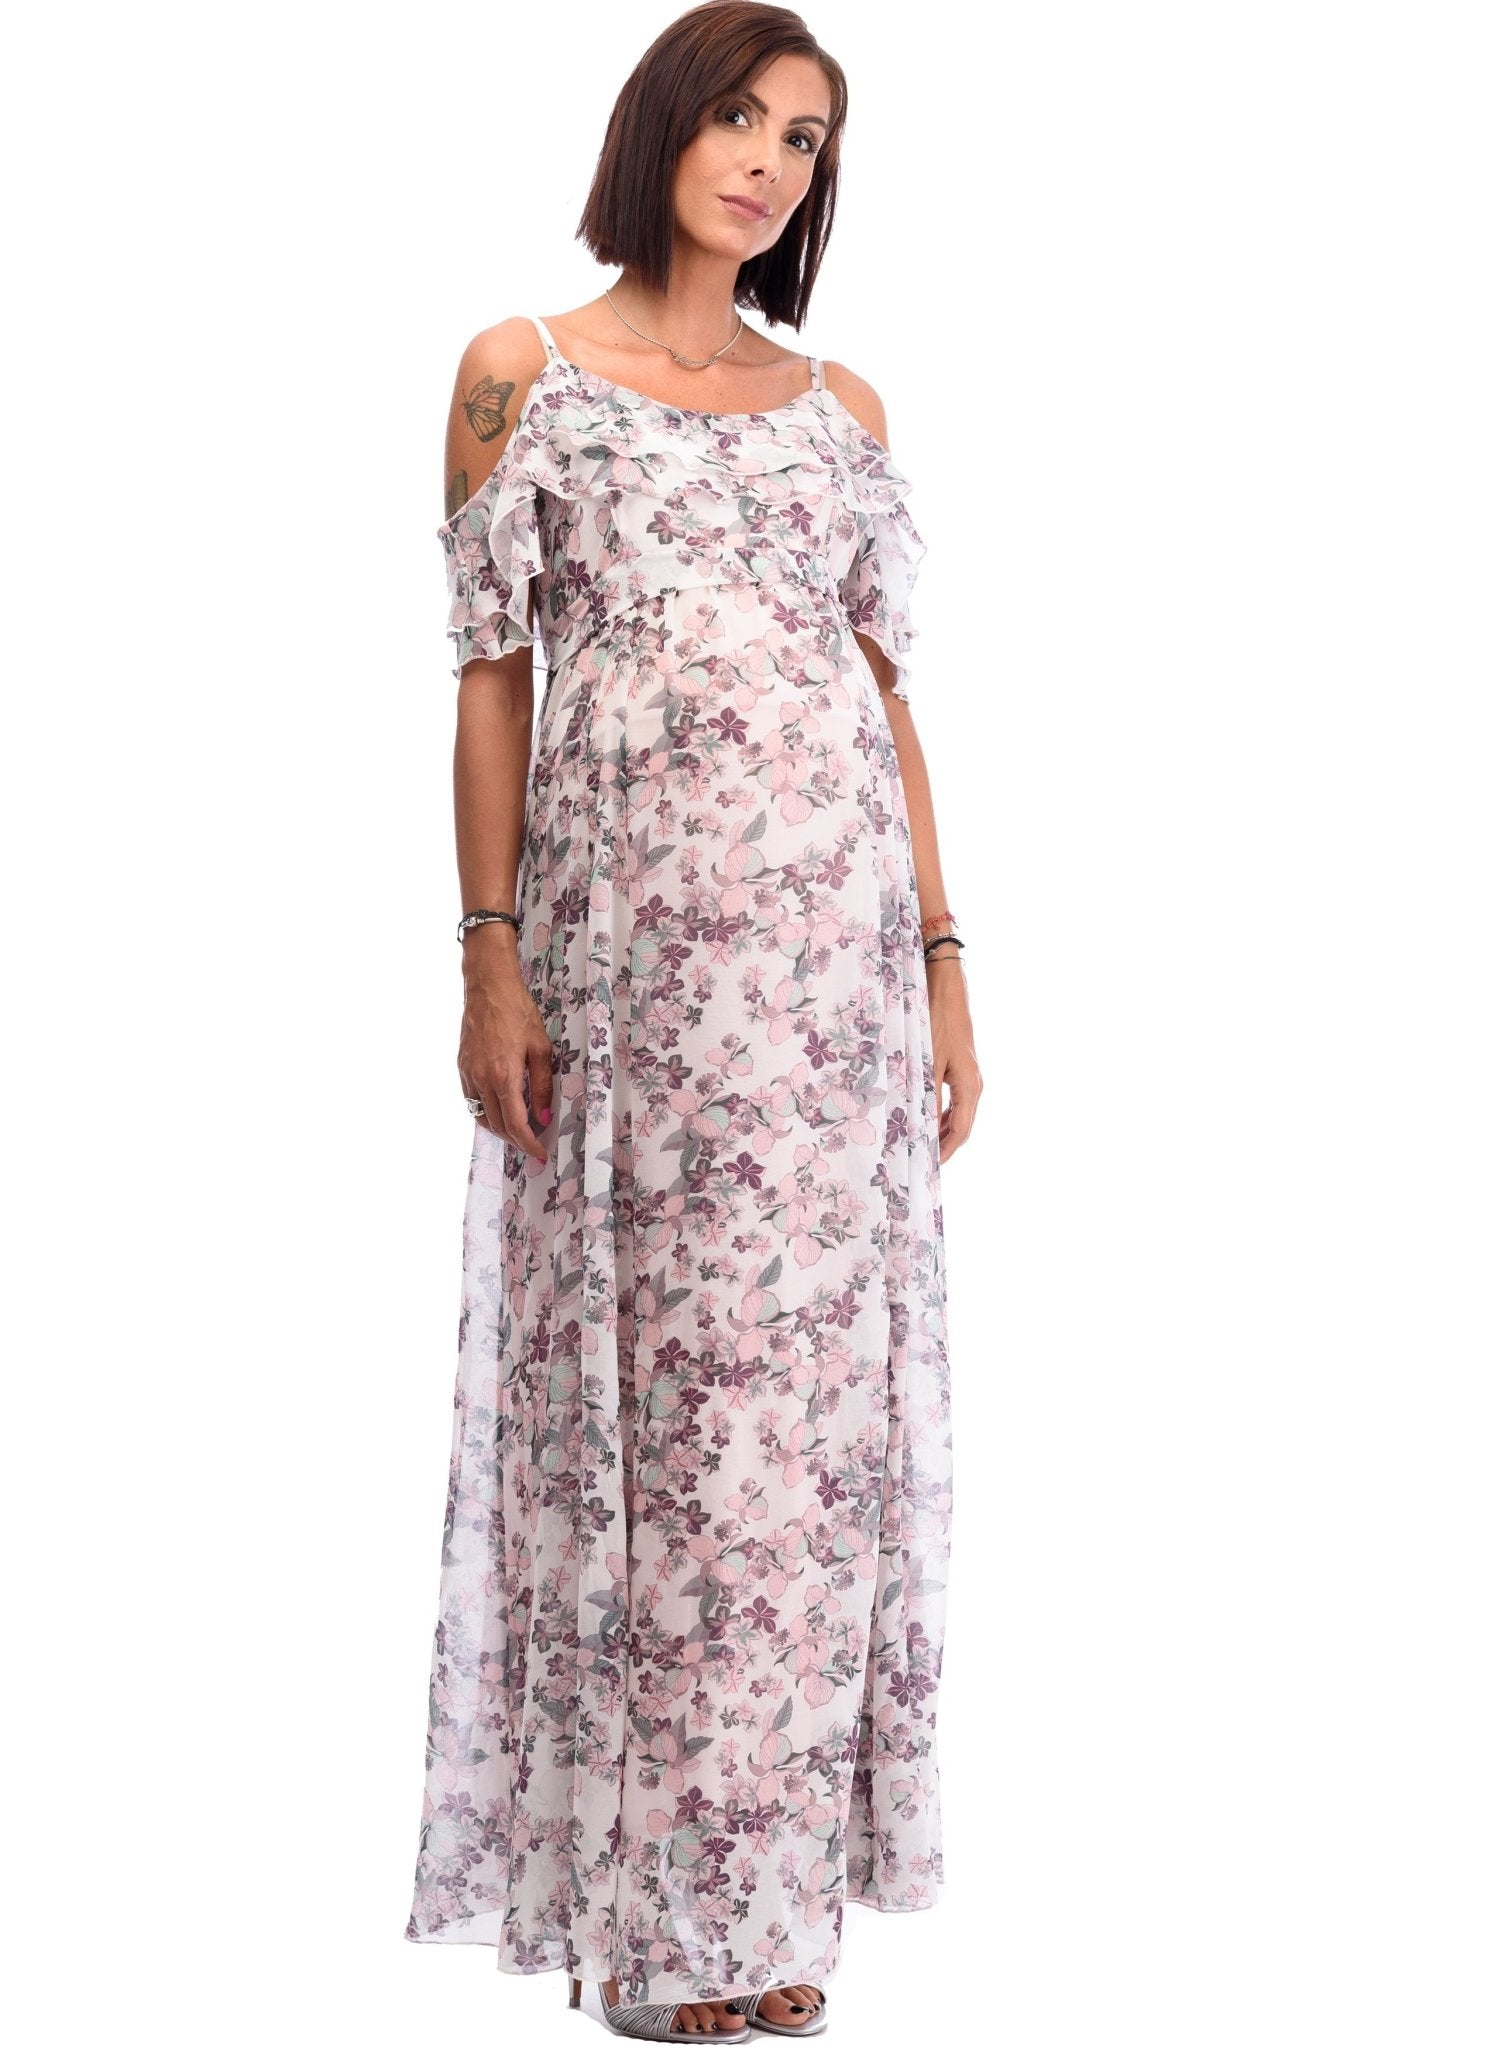 Floral Printed Maternity Long Dress - Mums and Bumps